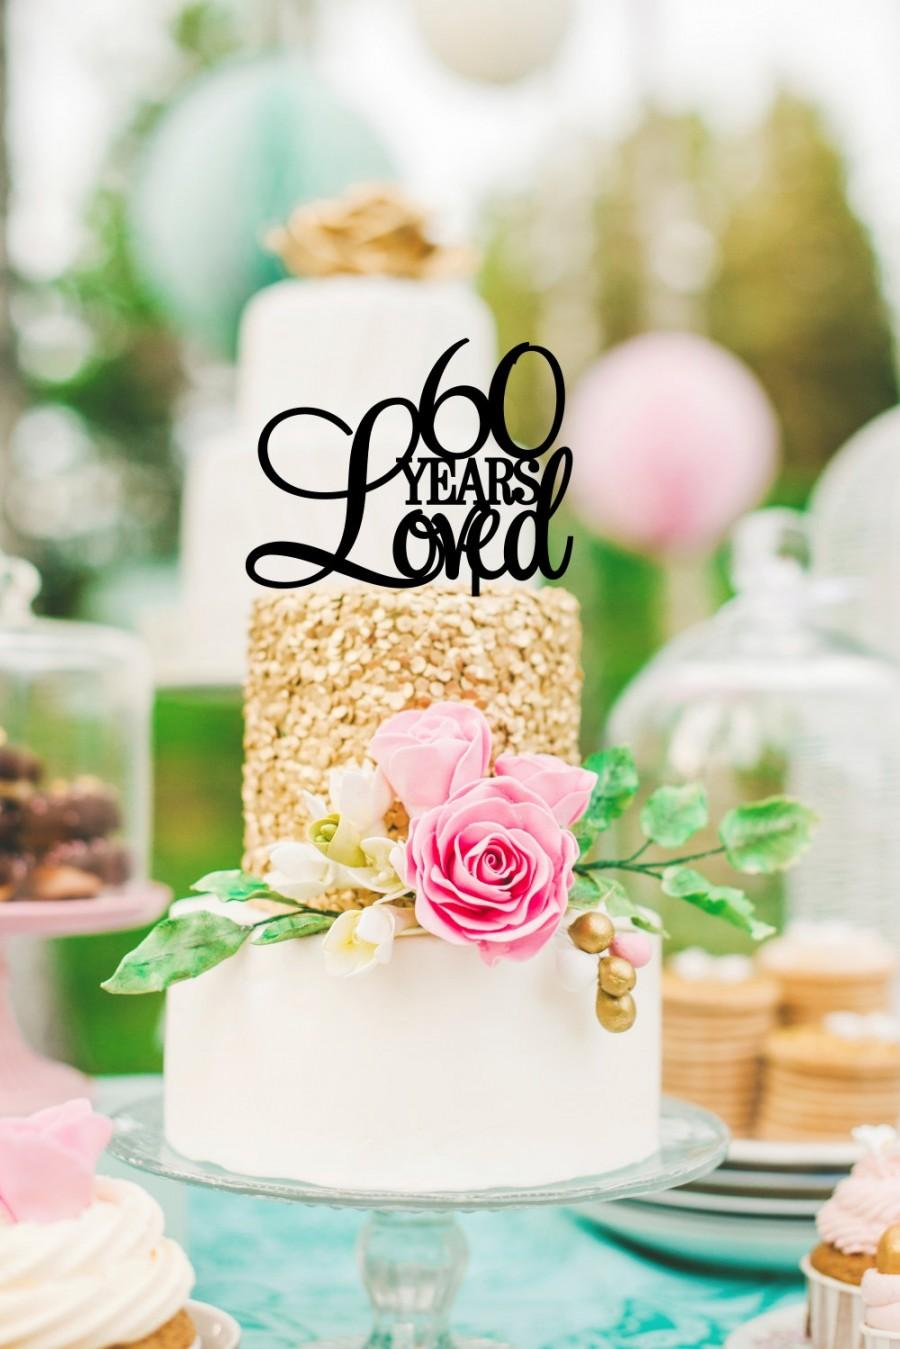 Mariage - 60 Years Loved Cake Topper - Birthday Cake Topper or 60th Anniversary Cake Topper